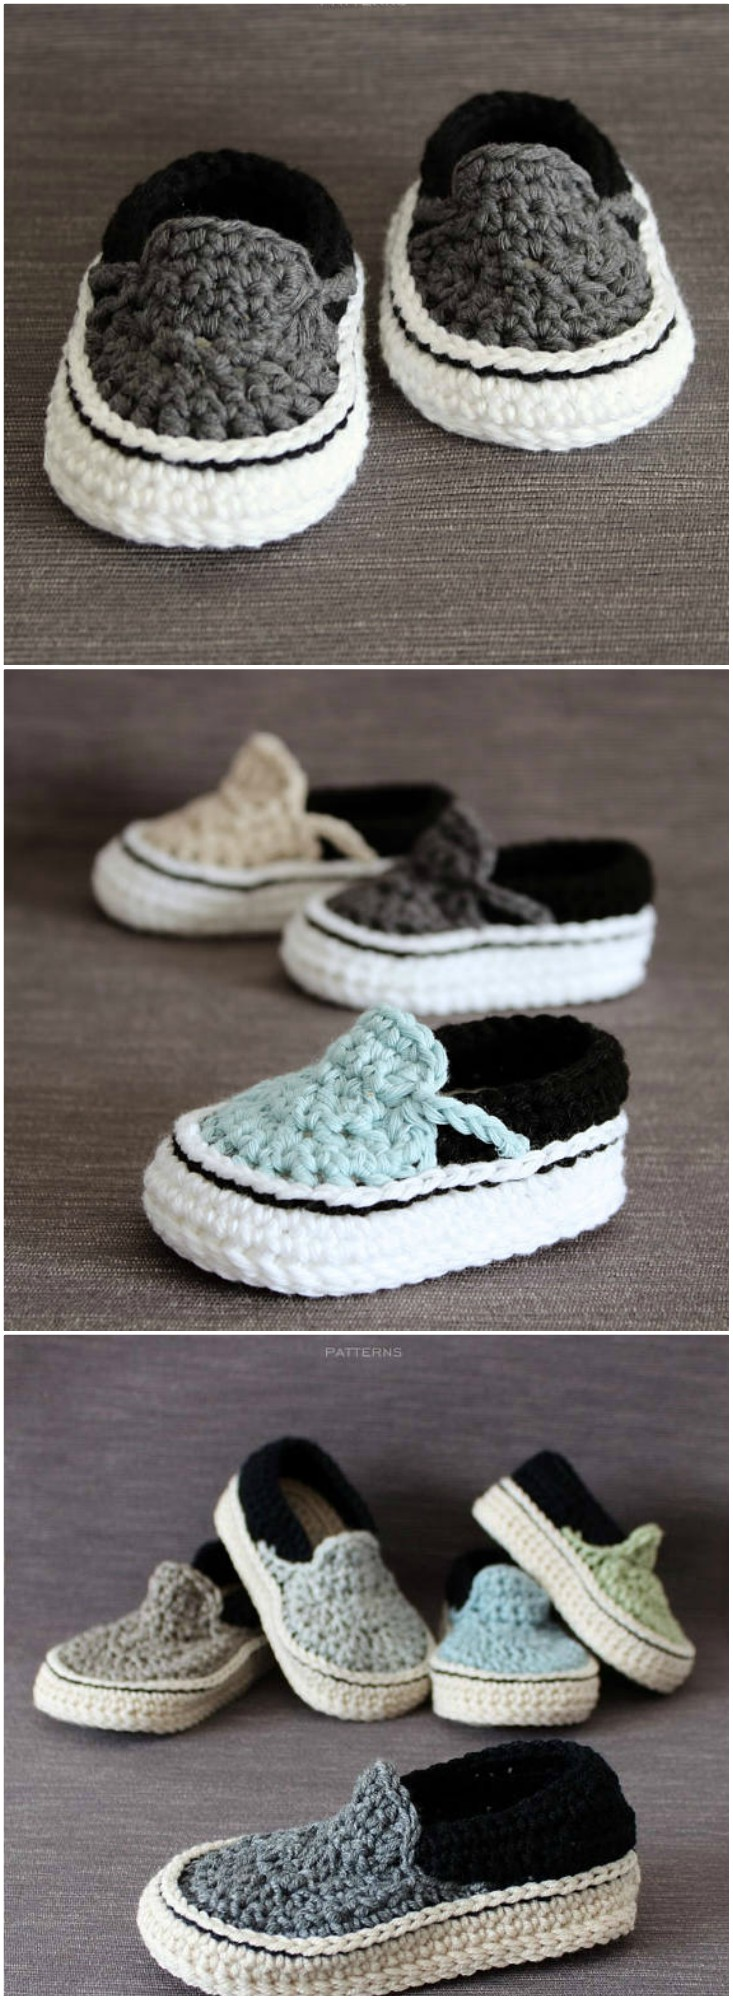 Newborn Shoes Vans Crochet Baby Vans Pattern Super Cute Ideas You Ll Love